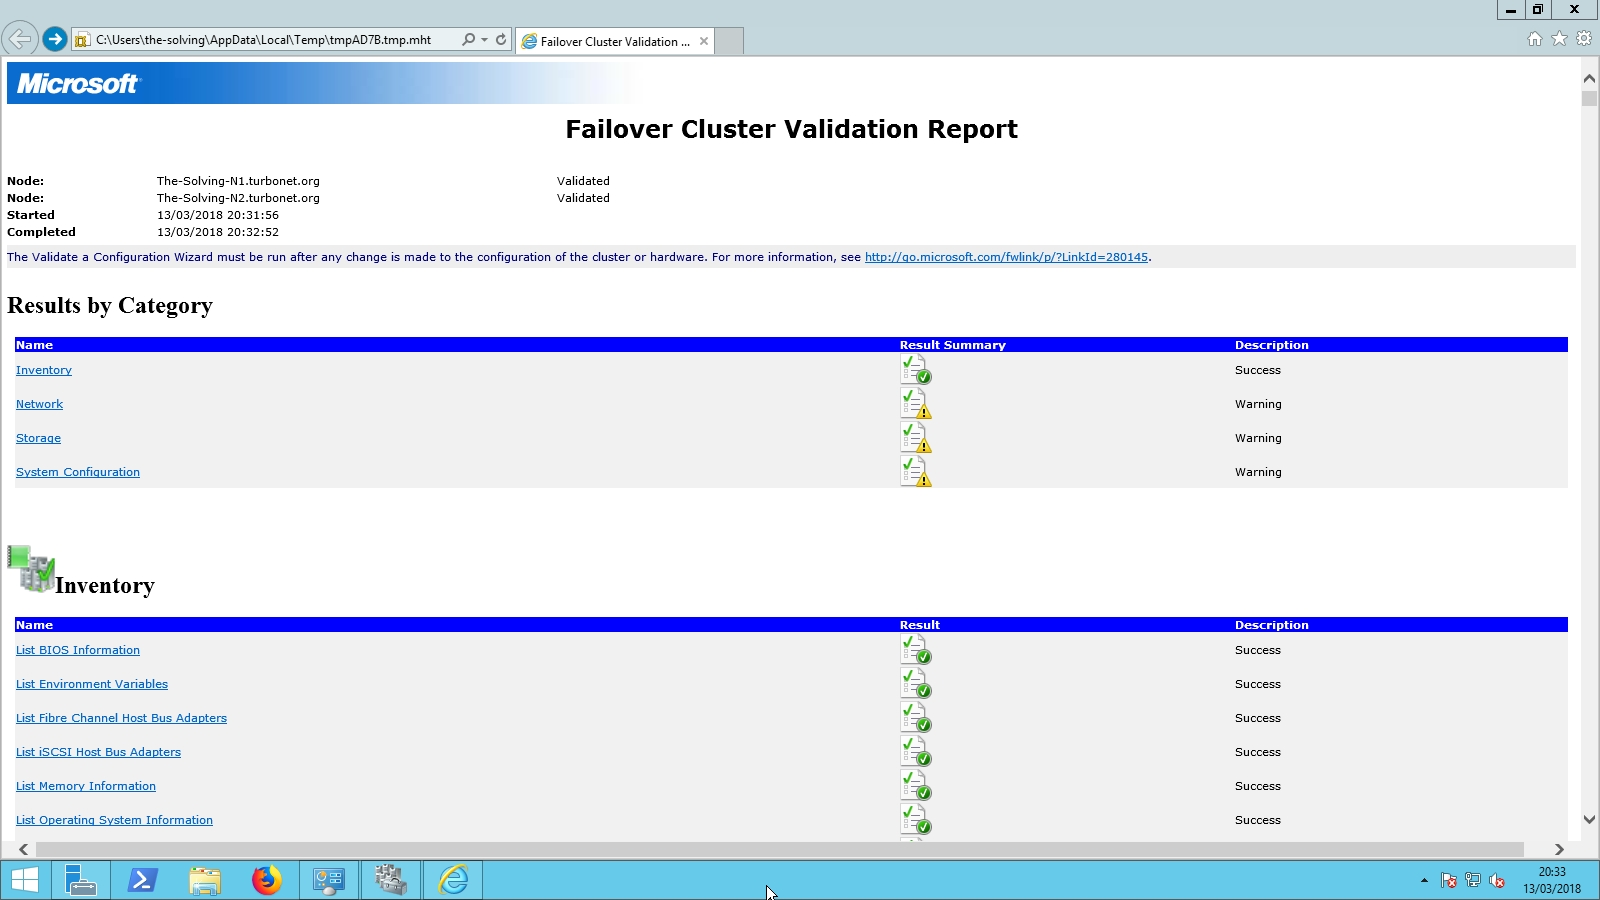 Failover Cluster Manager - validate cluster report